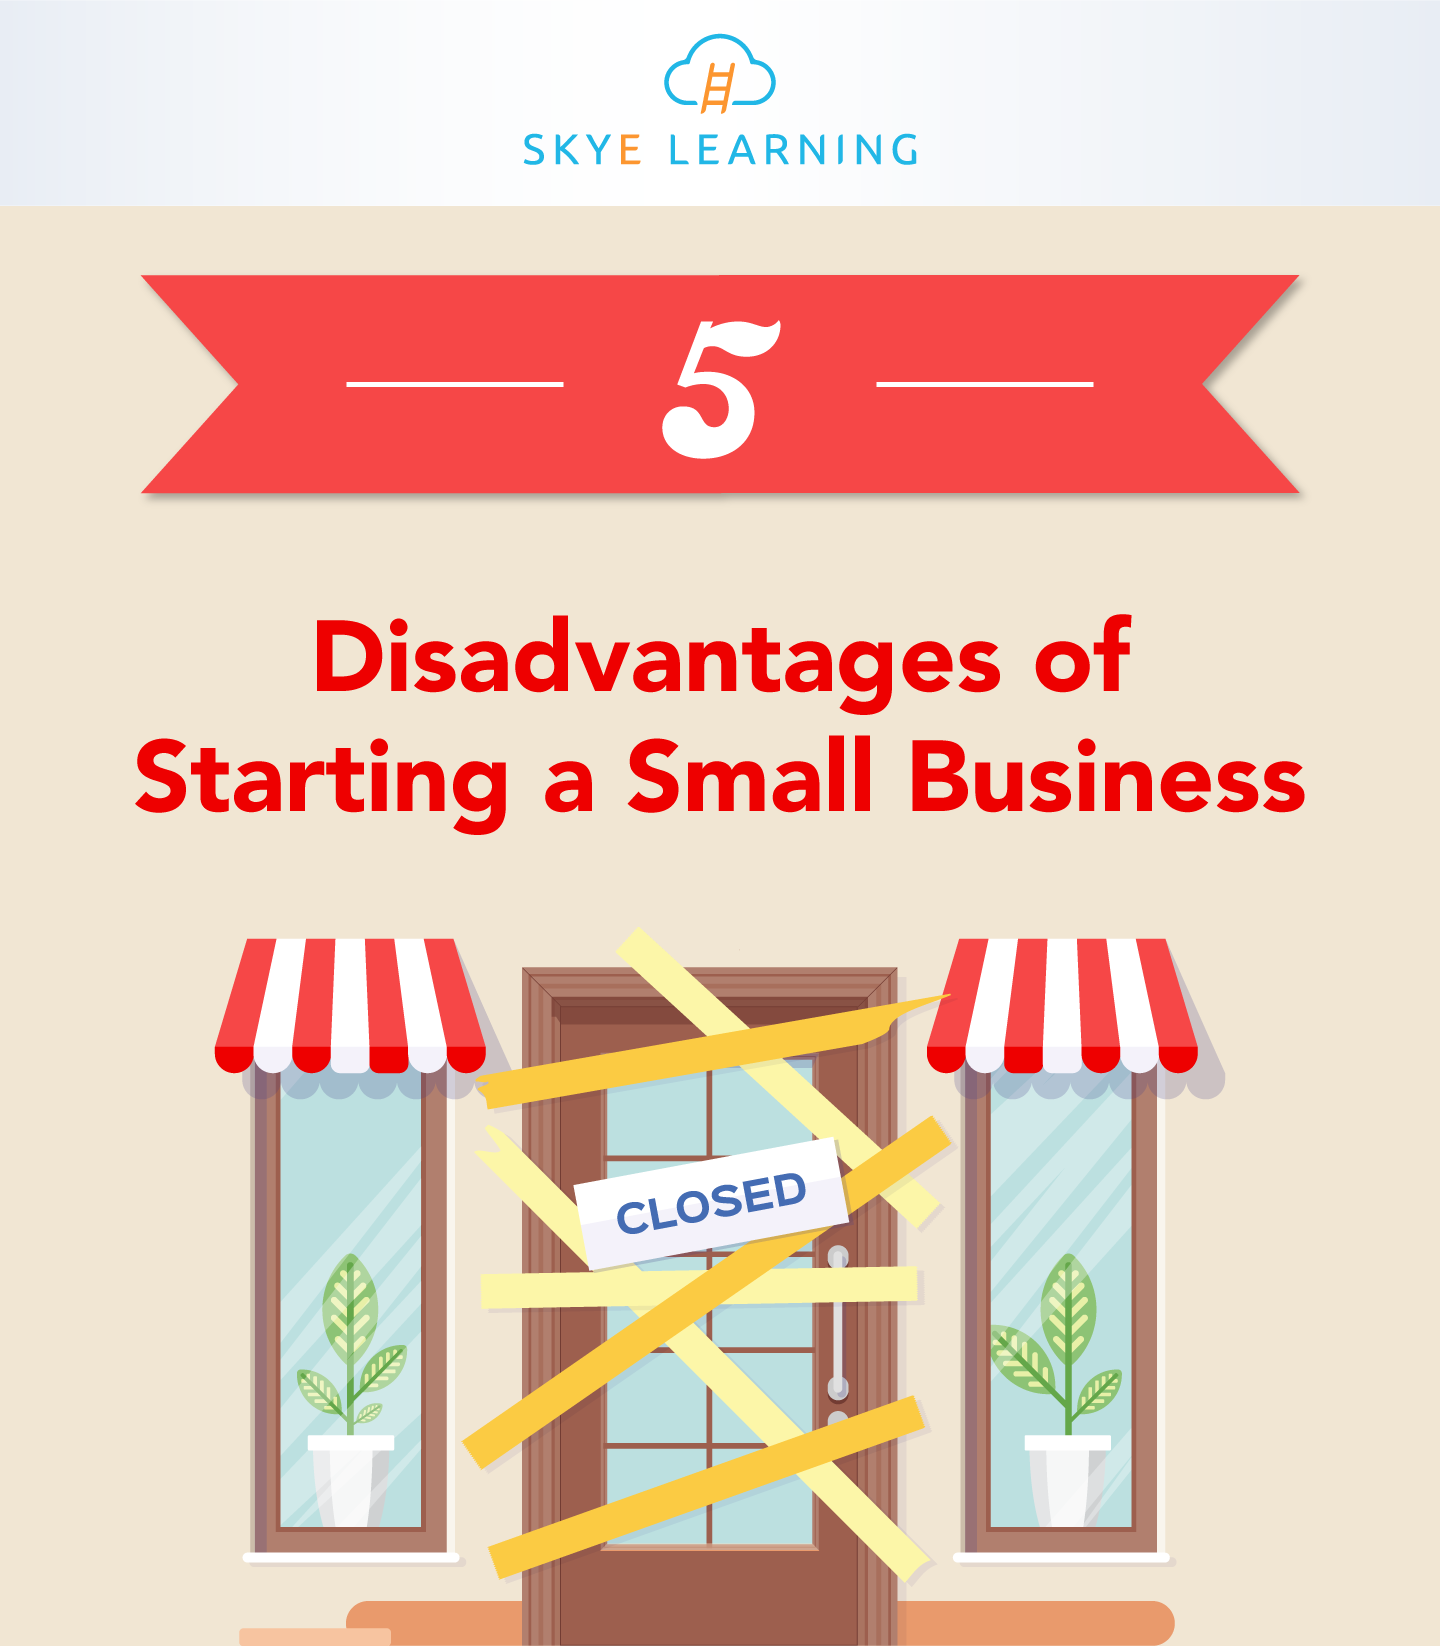 Disadvantages of Starting a Small Business